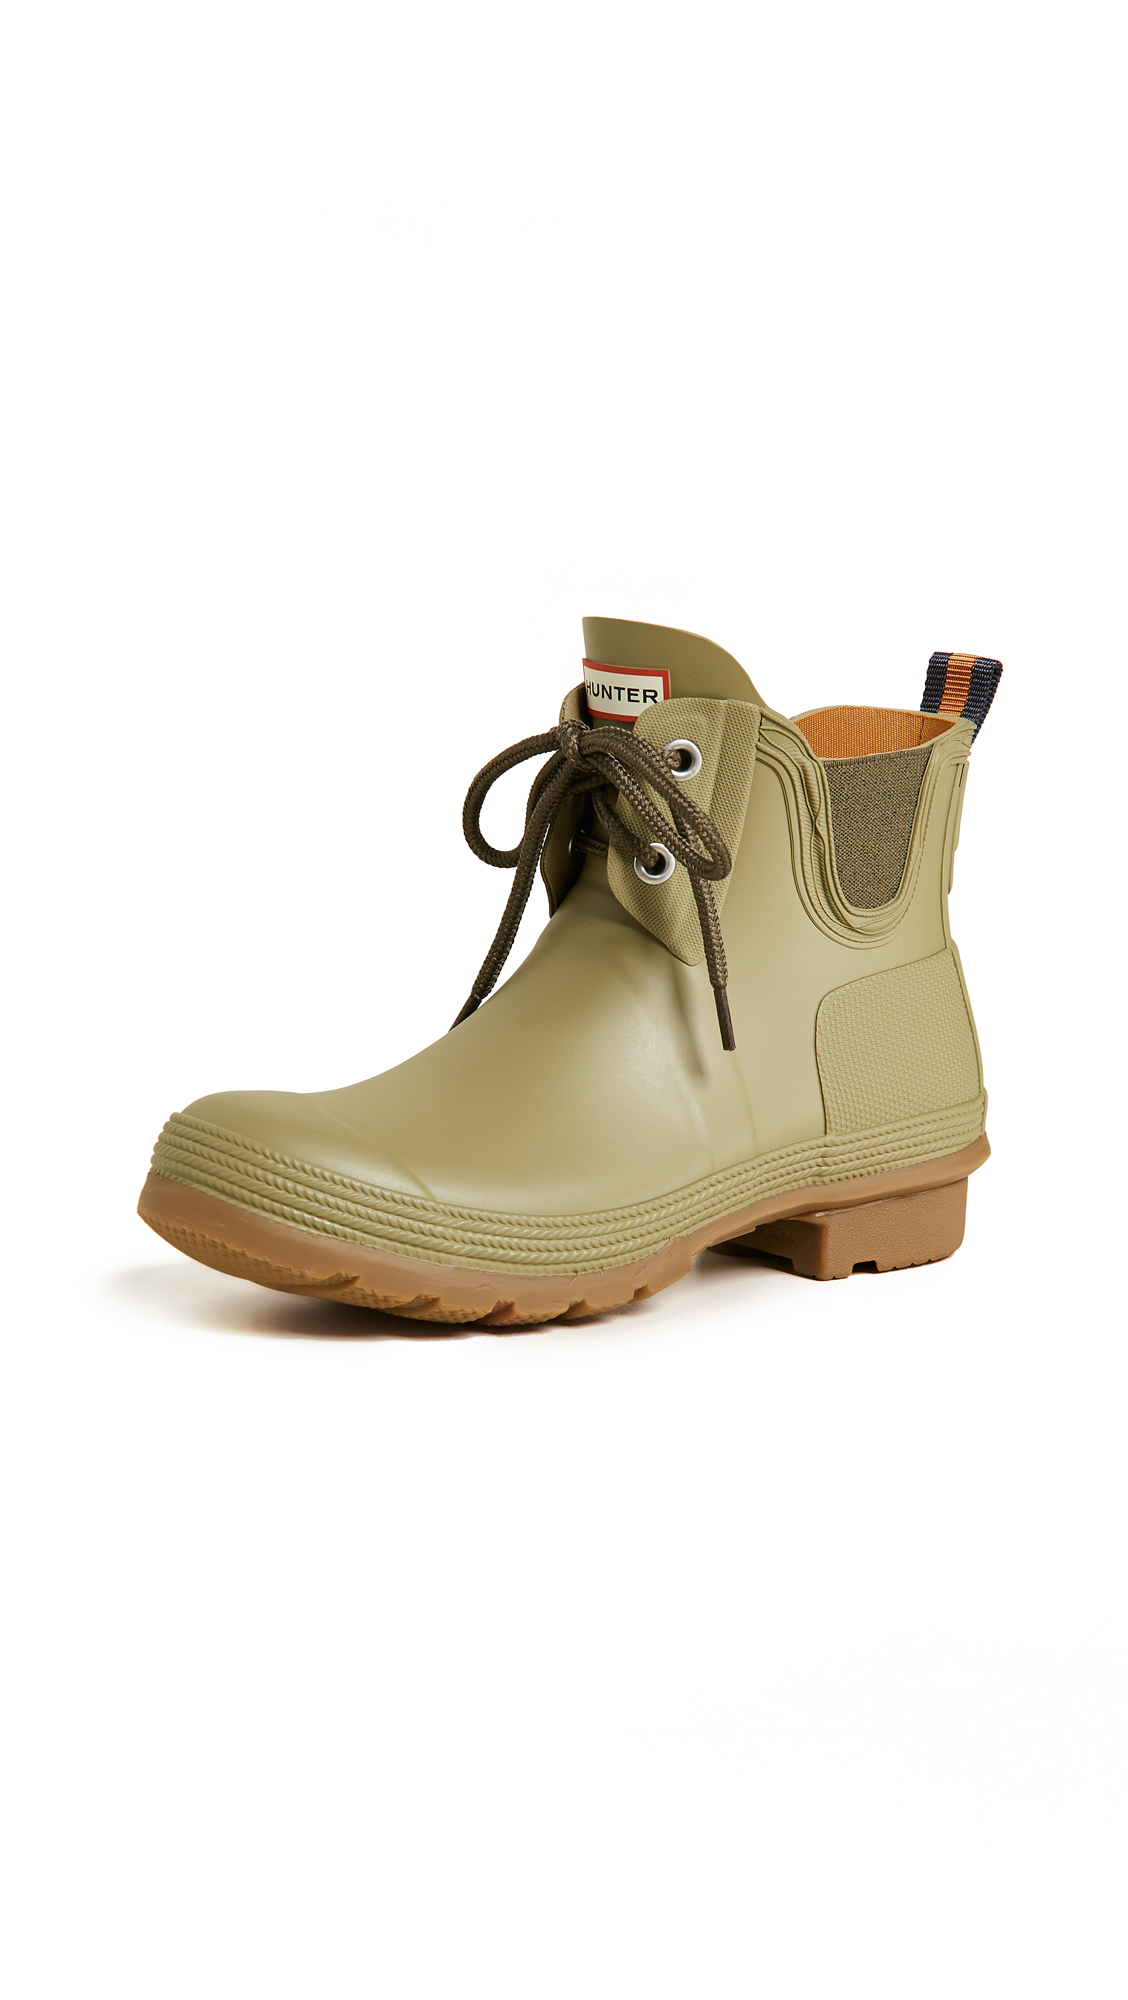 Hunter Boots Original Sissinghurst Lace Up Boots - Sage/Gum